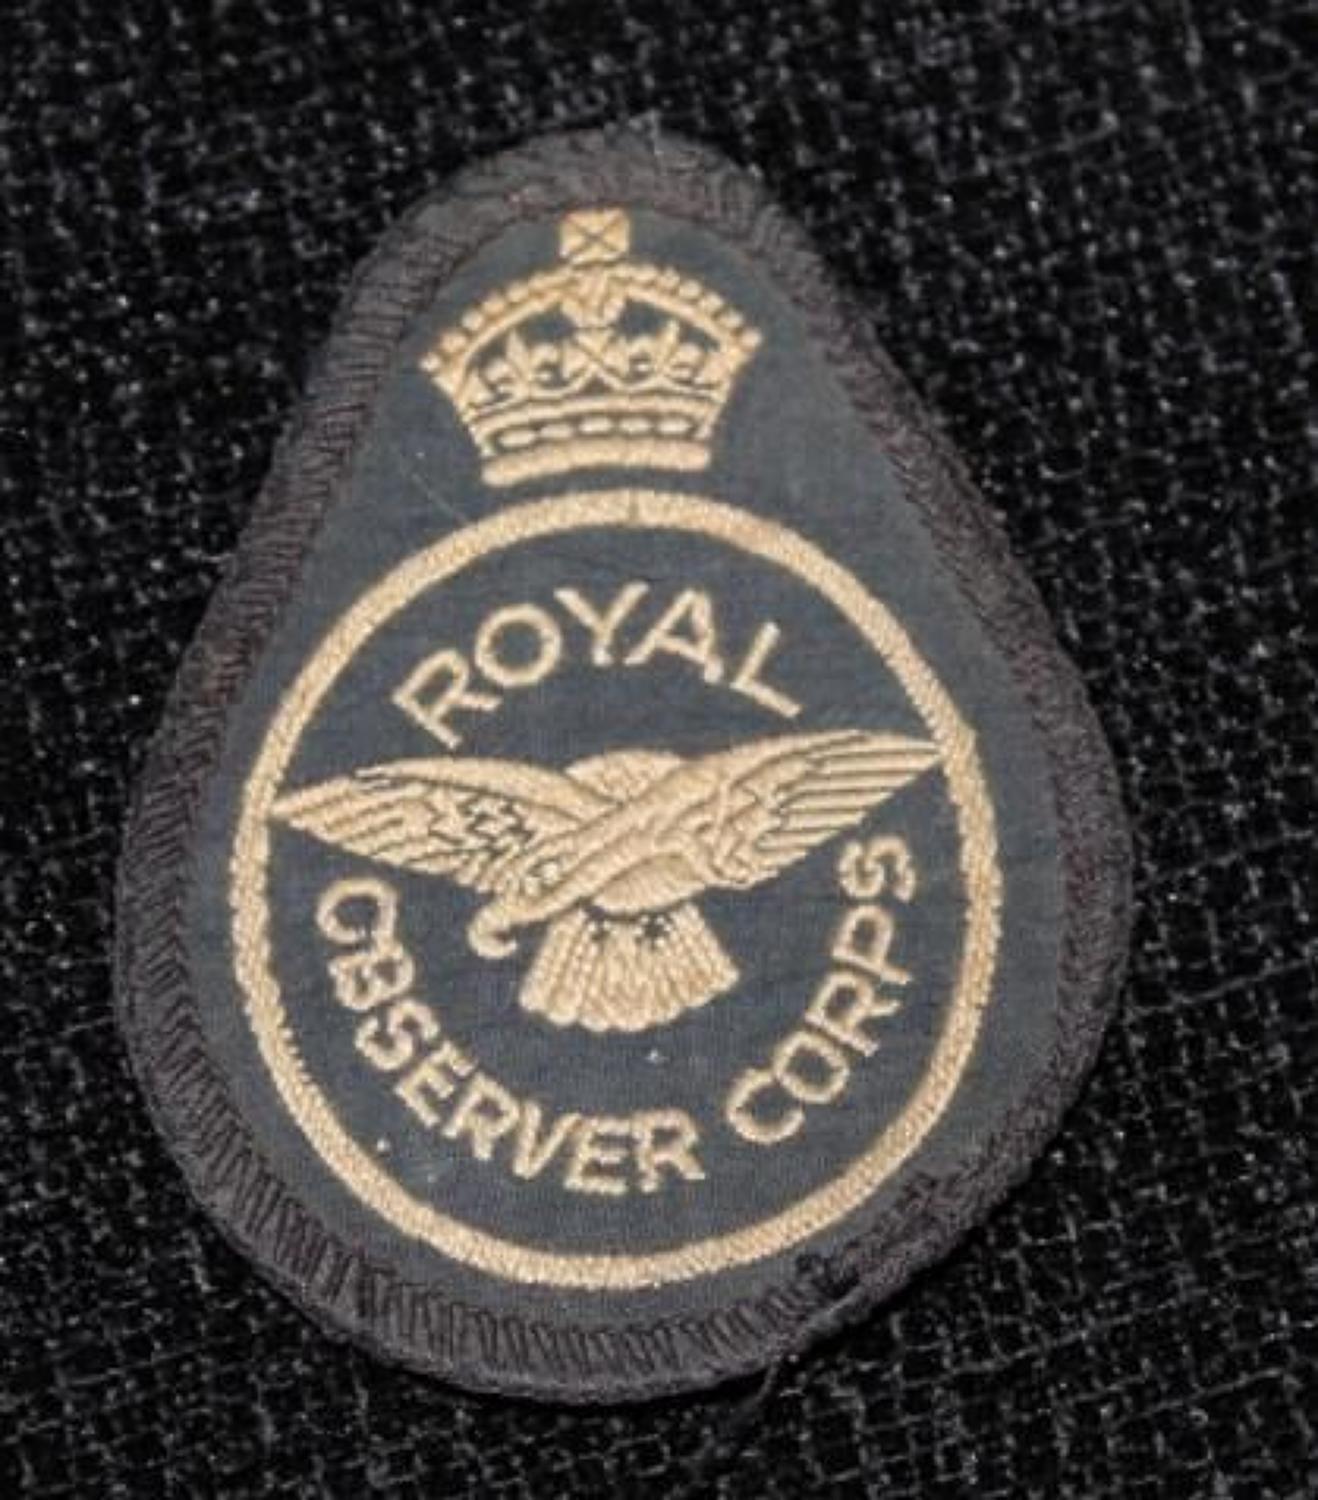 Royal Observer Corps Cloth Badge